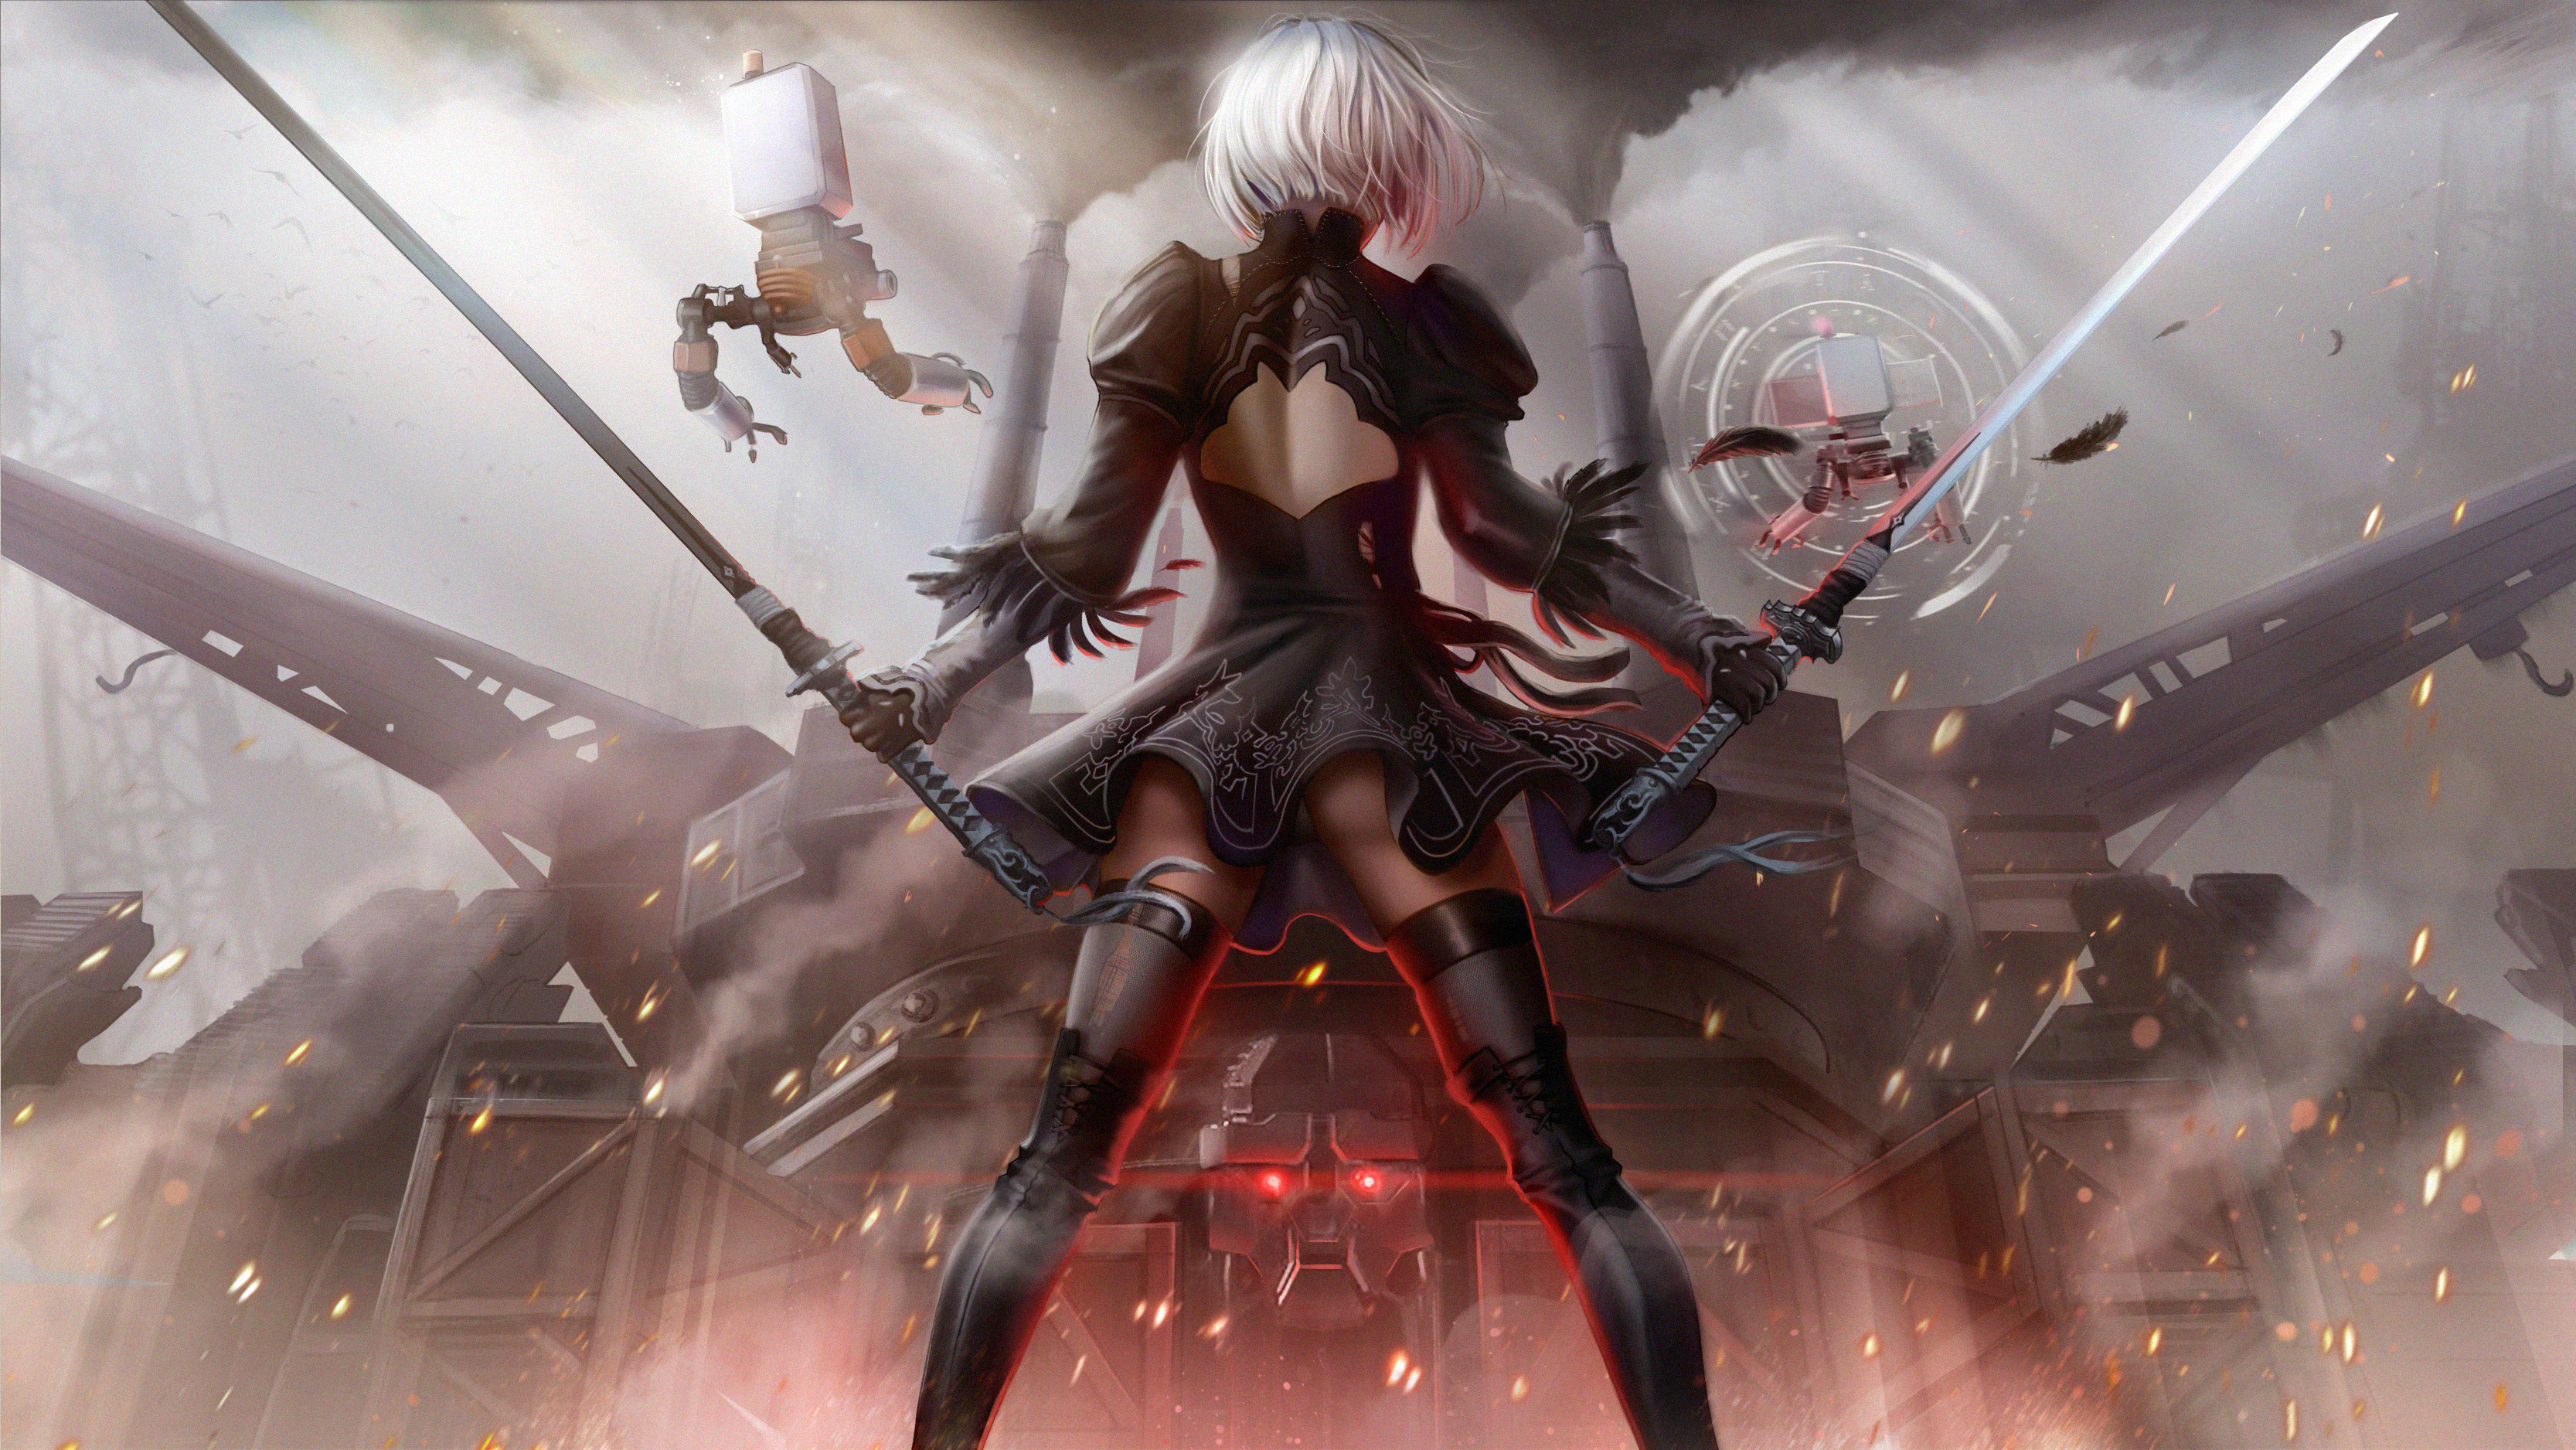 Nier Automata Fan Art Wallpaper 01 1920x1080: 2560x1080 2B NieR Automata Art 2560x1080 Resolution HD 4k